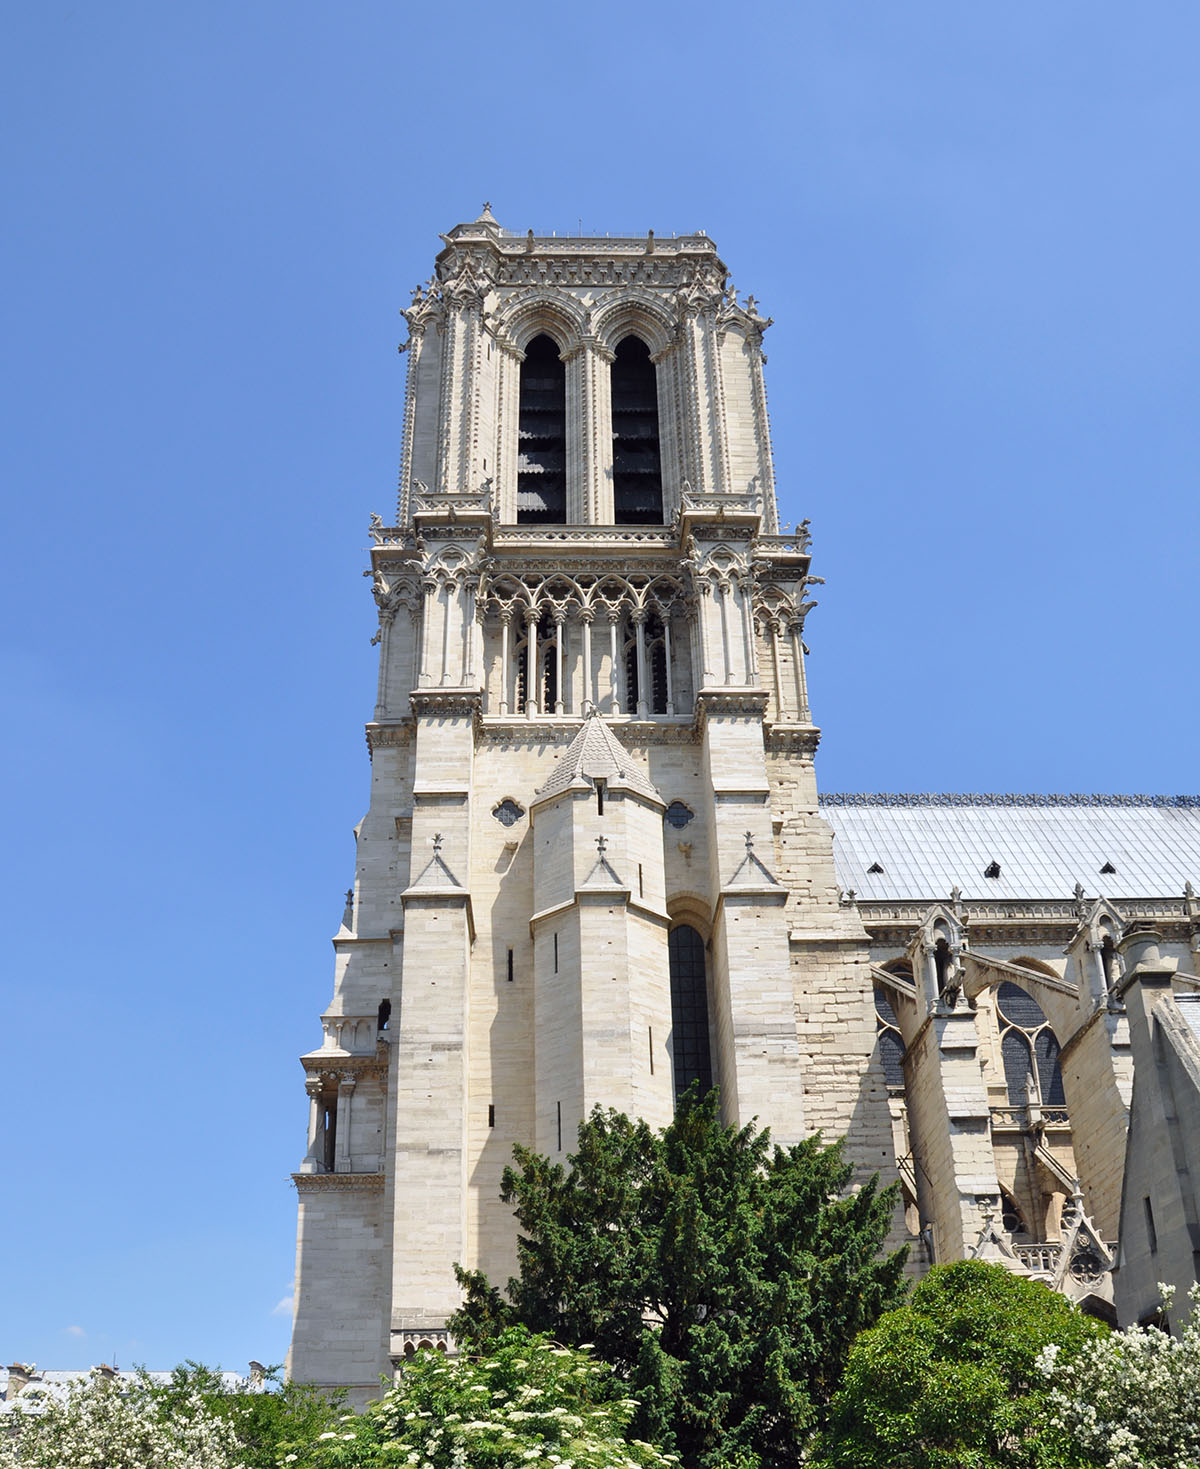 Notre Dame Cathedral exterior 05 June 2010 photo by Bob Borson